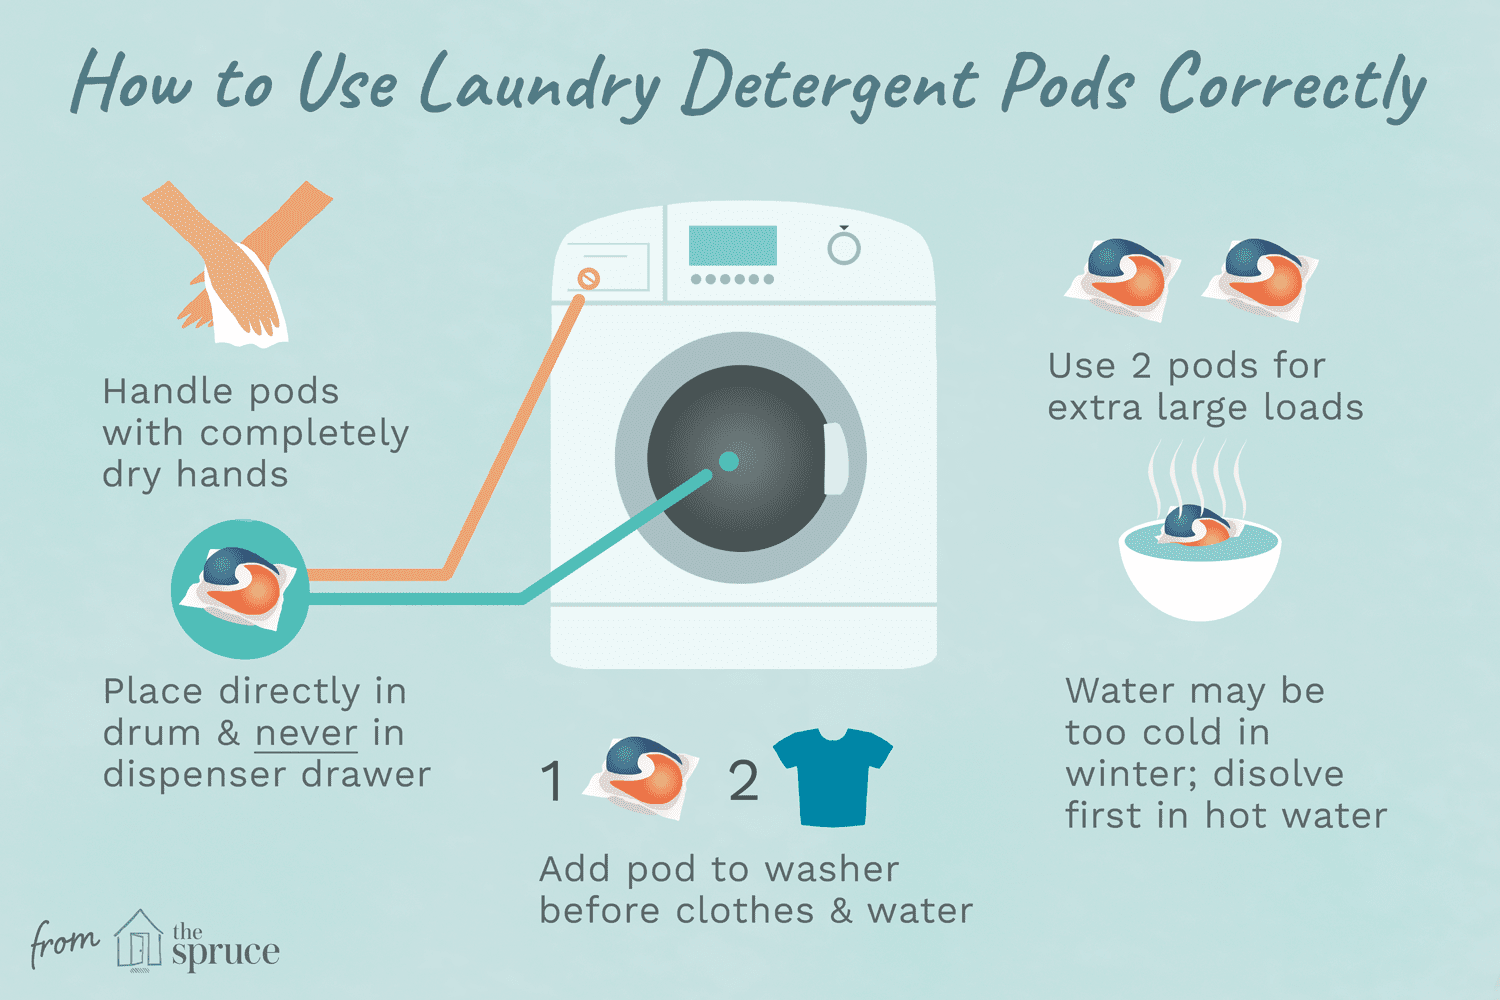 Troubleshooting Laundry Pods